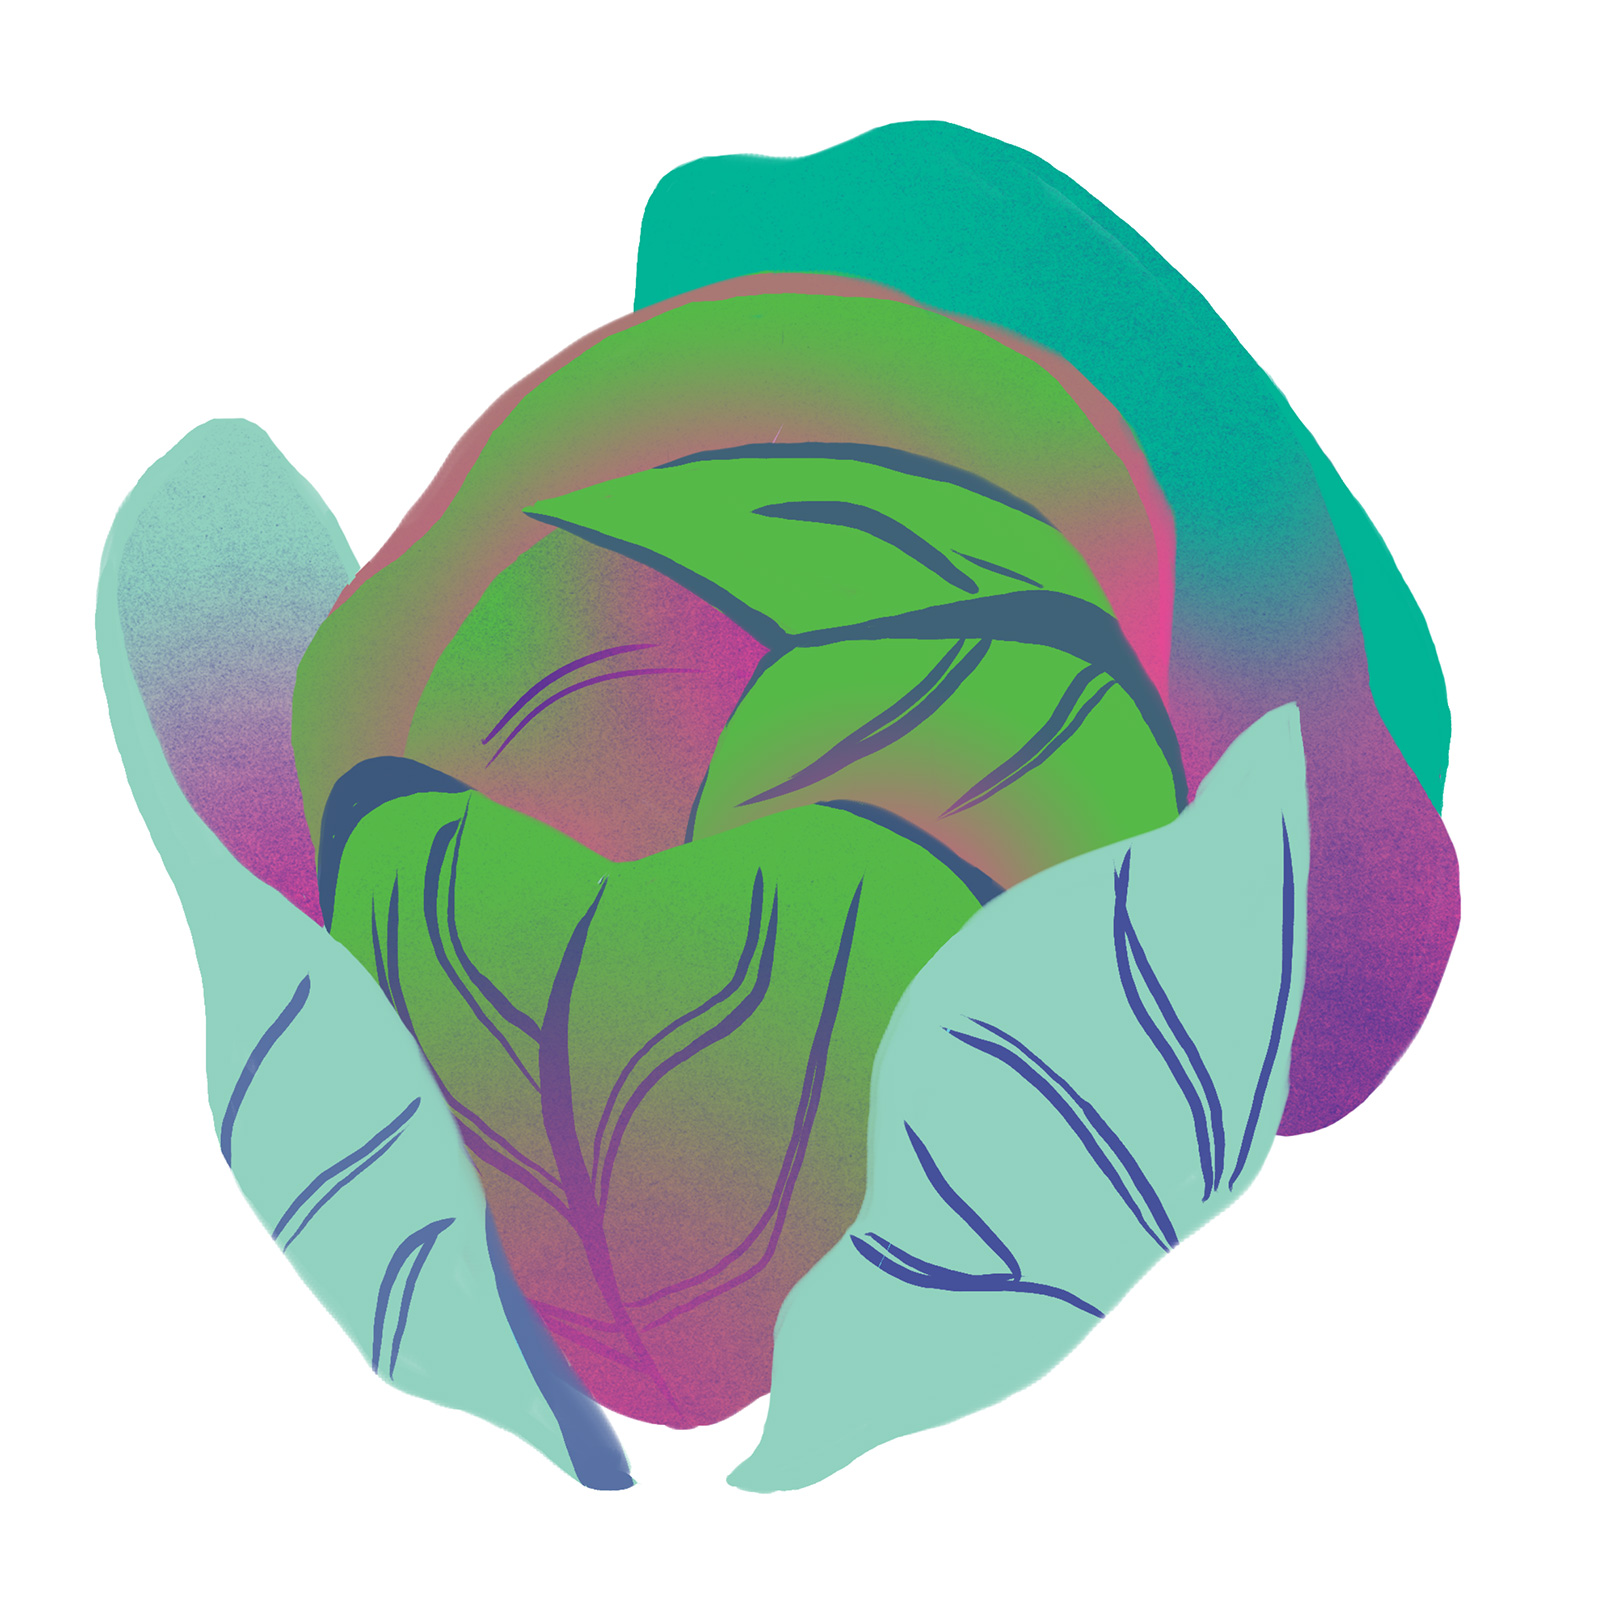 cabbage-biomimicry-digital-illustration-by-Fiona-Dunnett.jpg